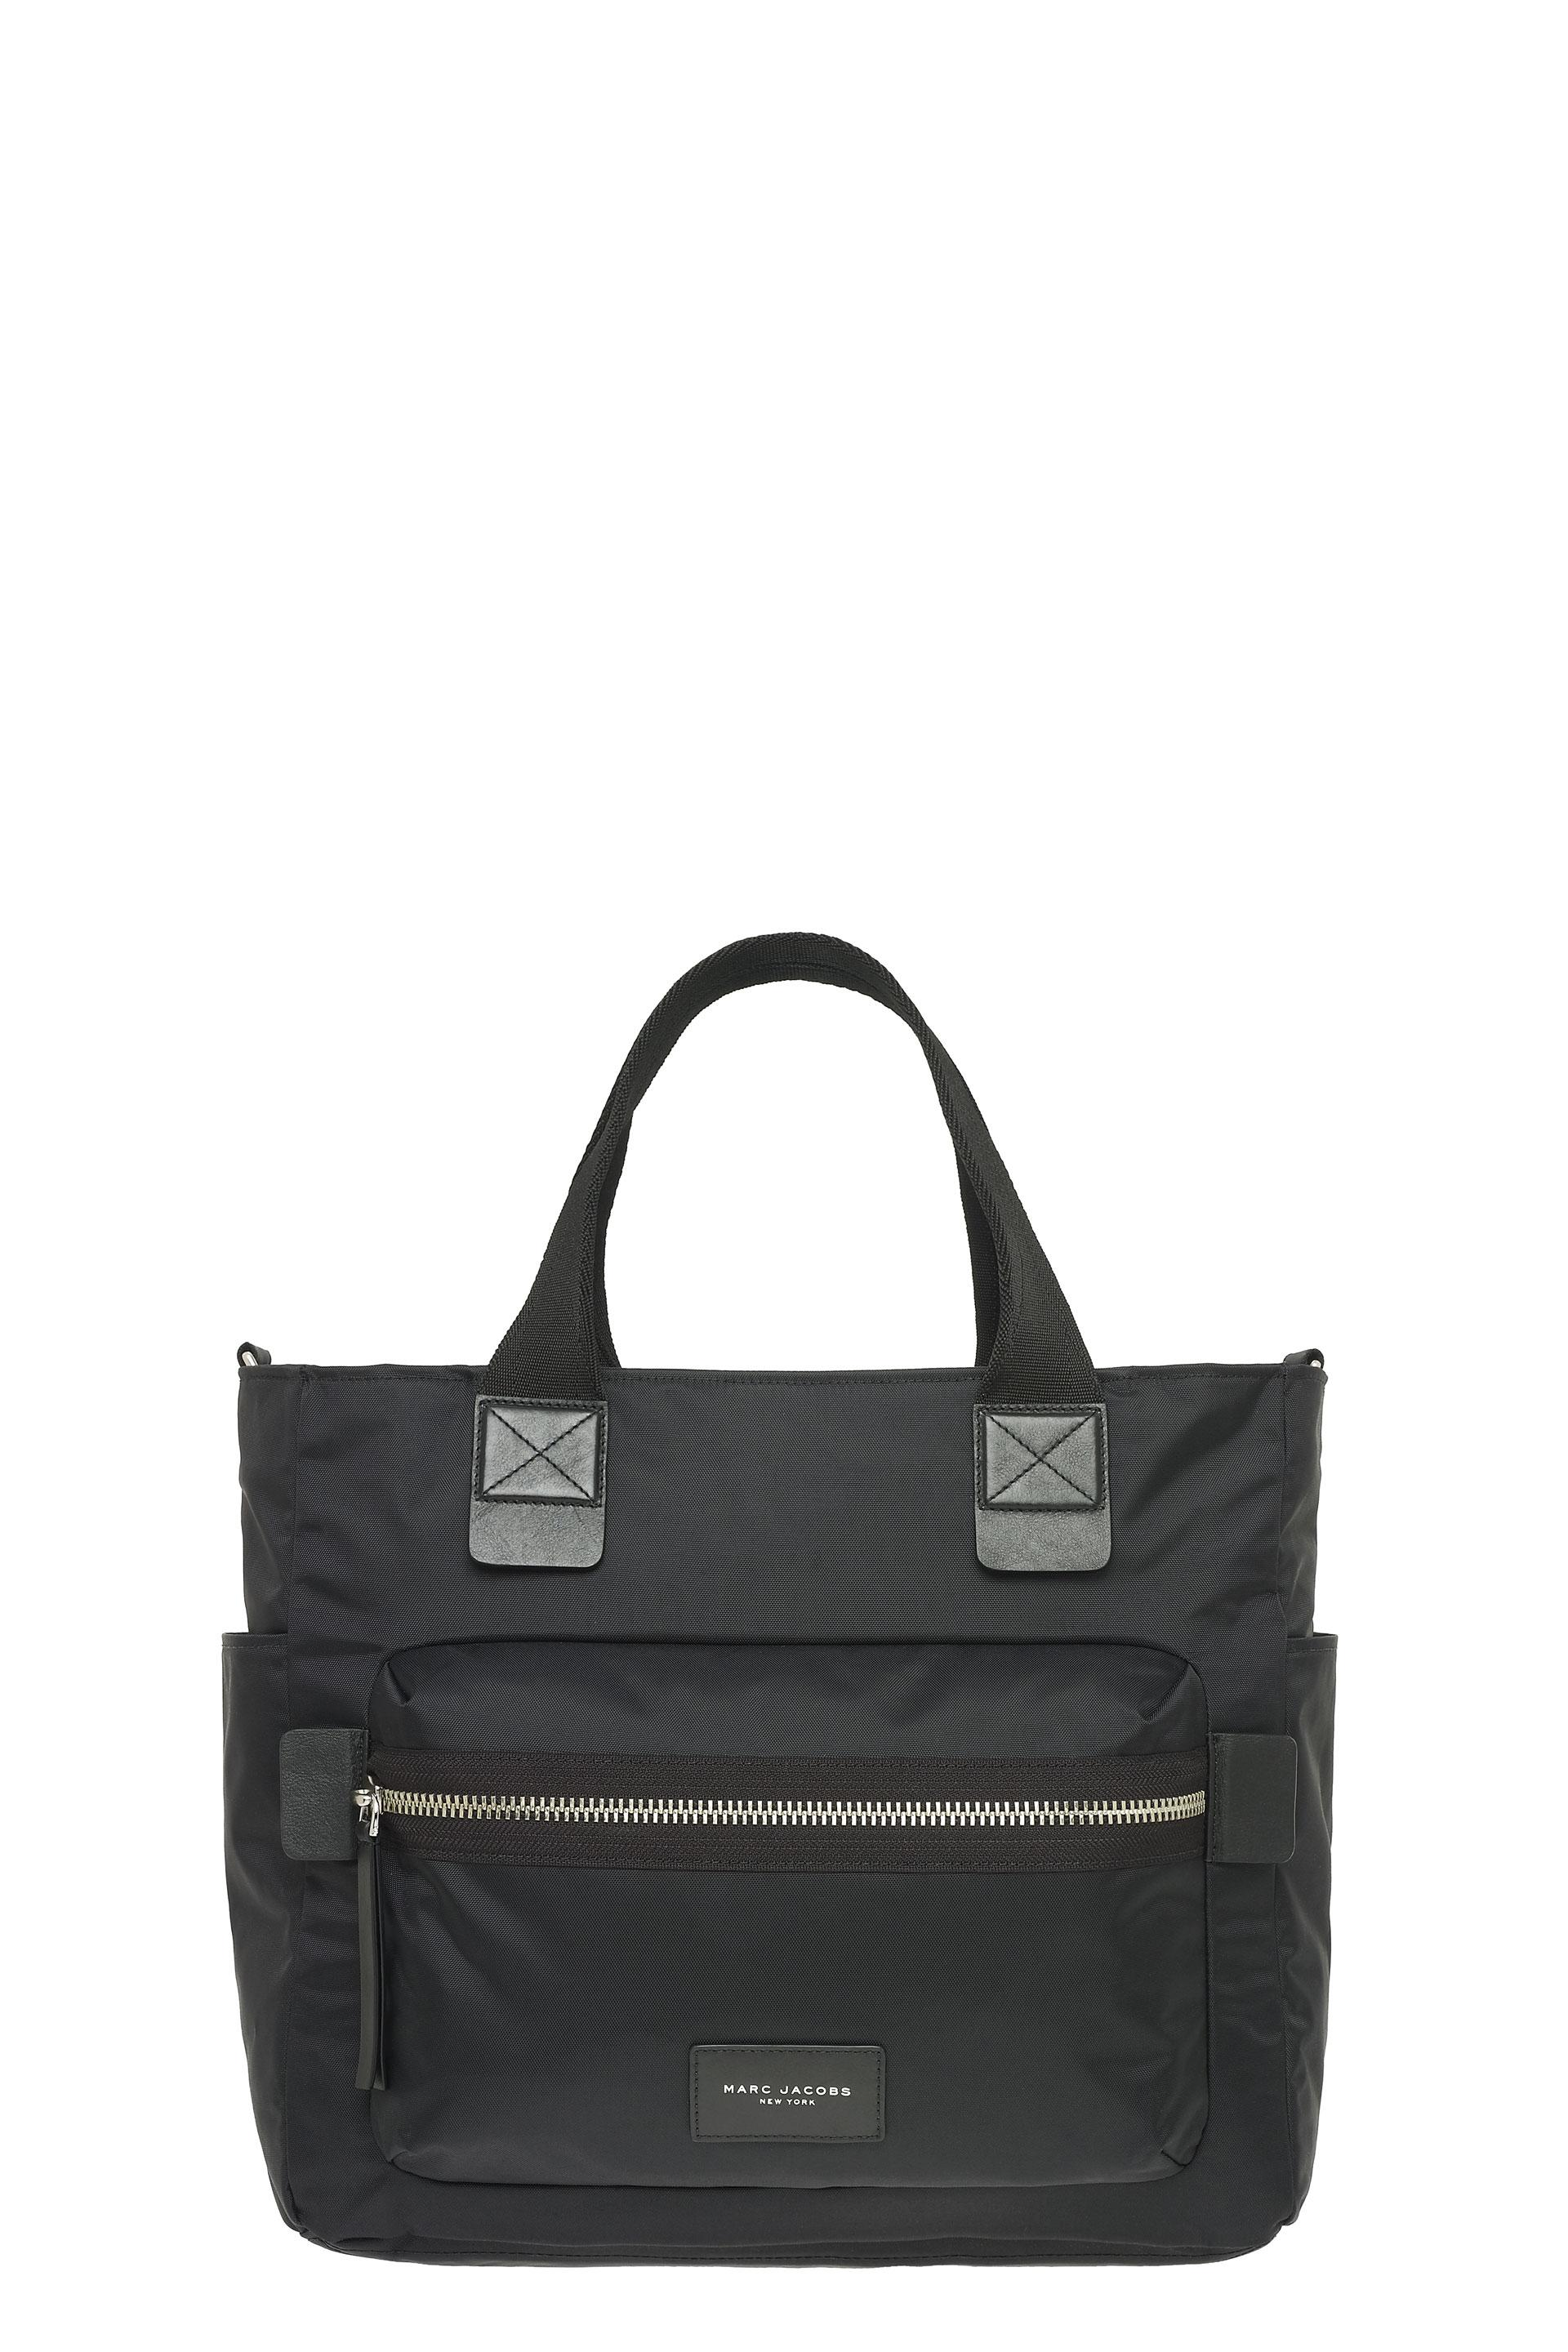 'BIKER' NYLON BABY BAG - BLACK